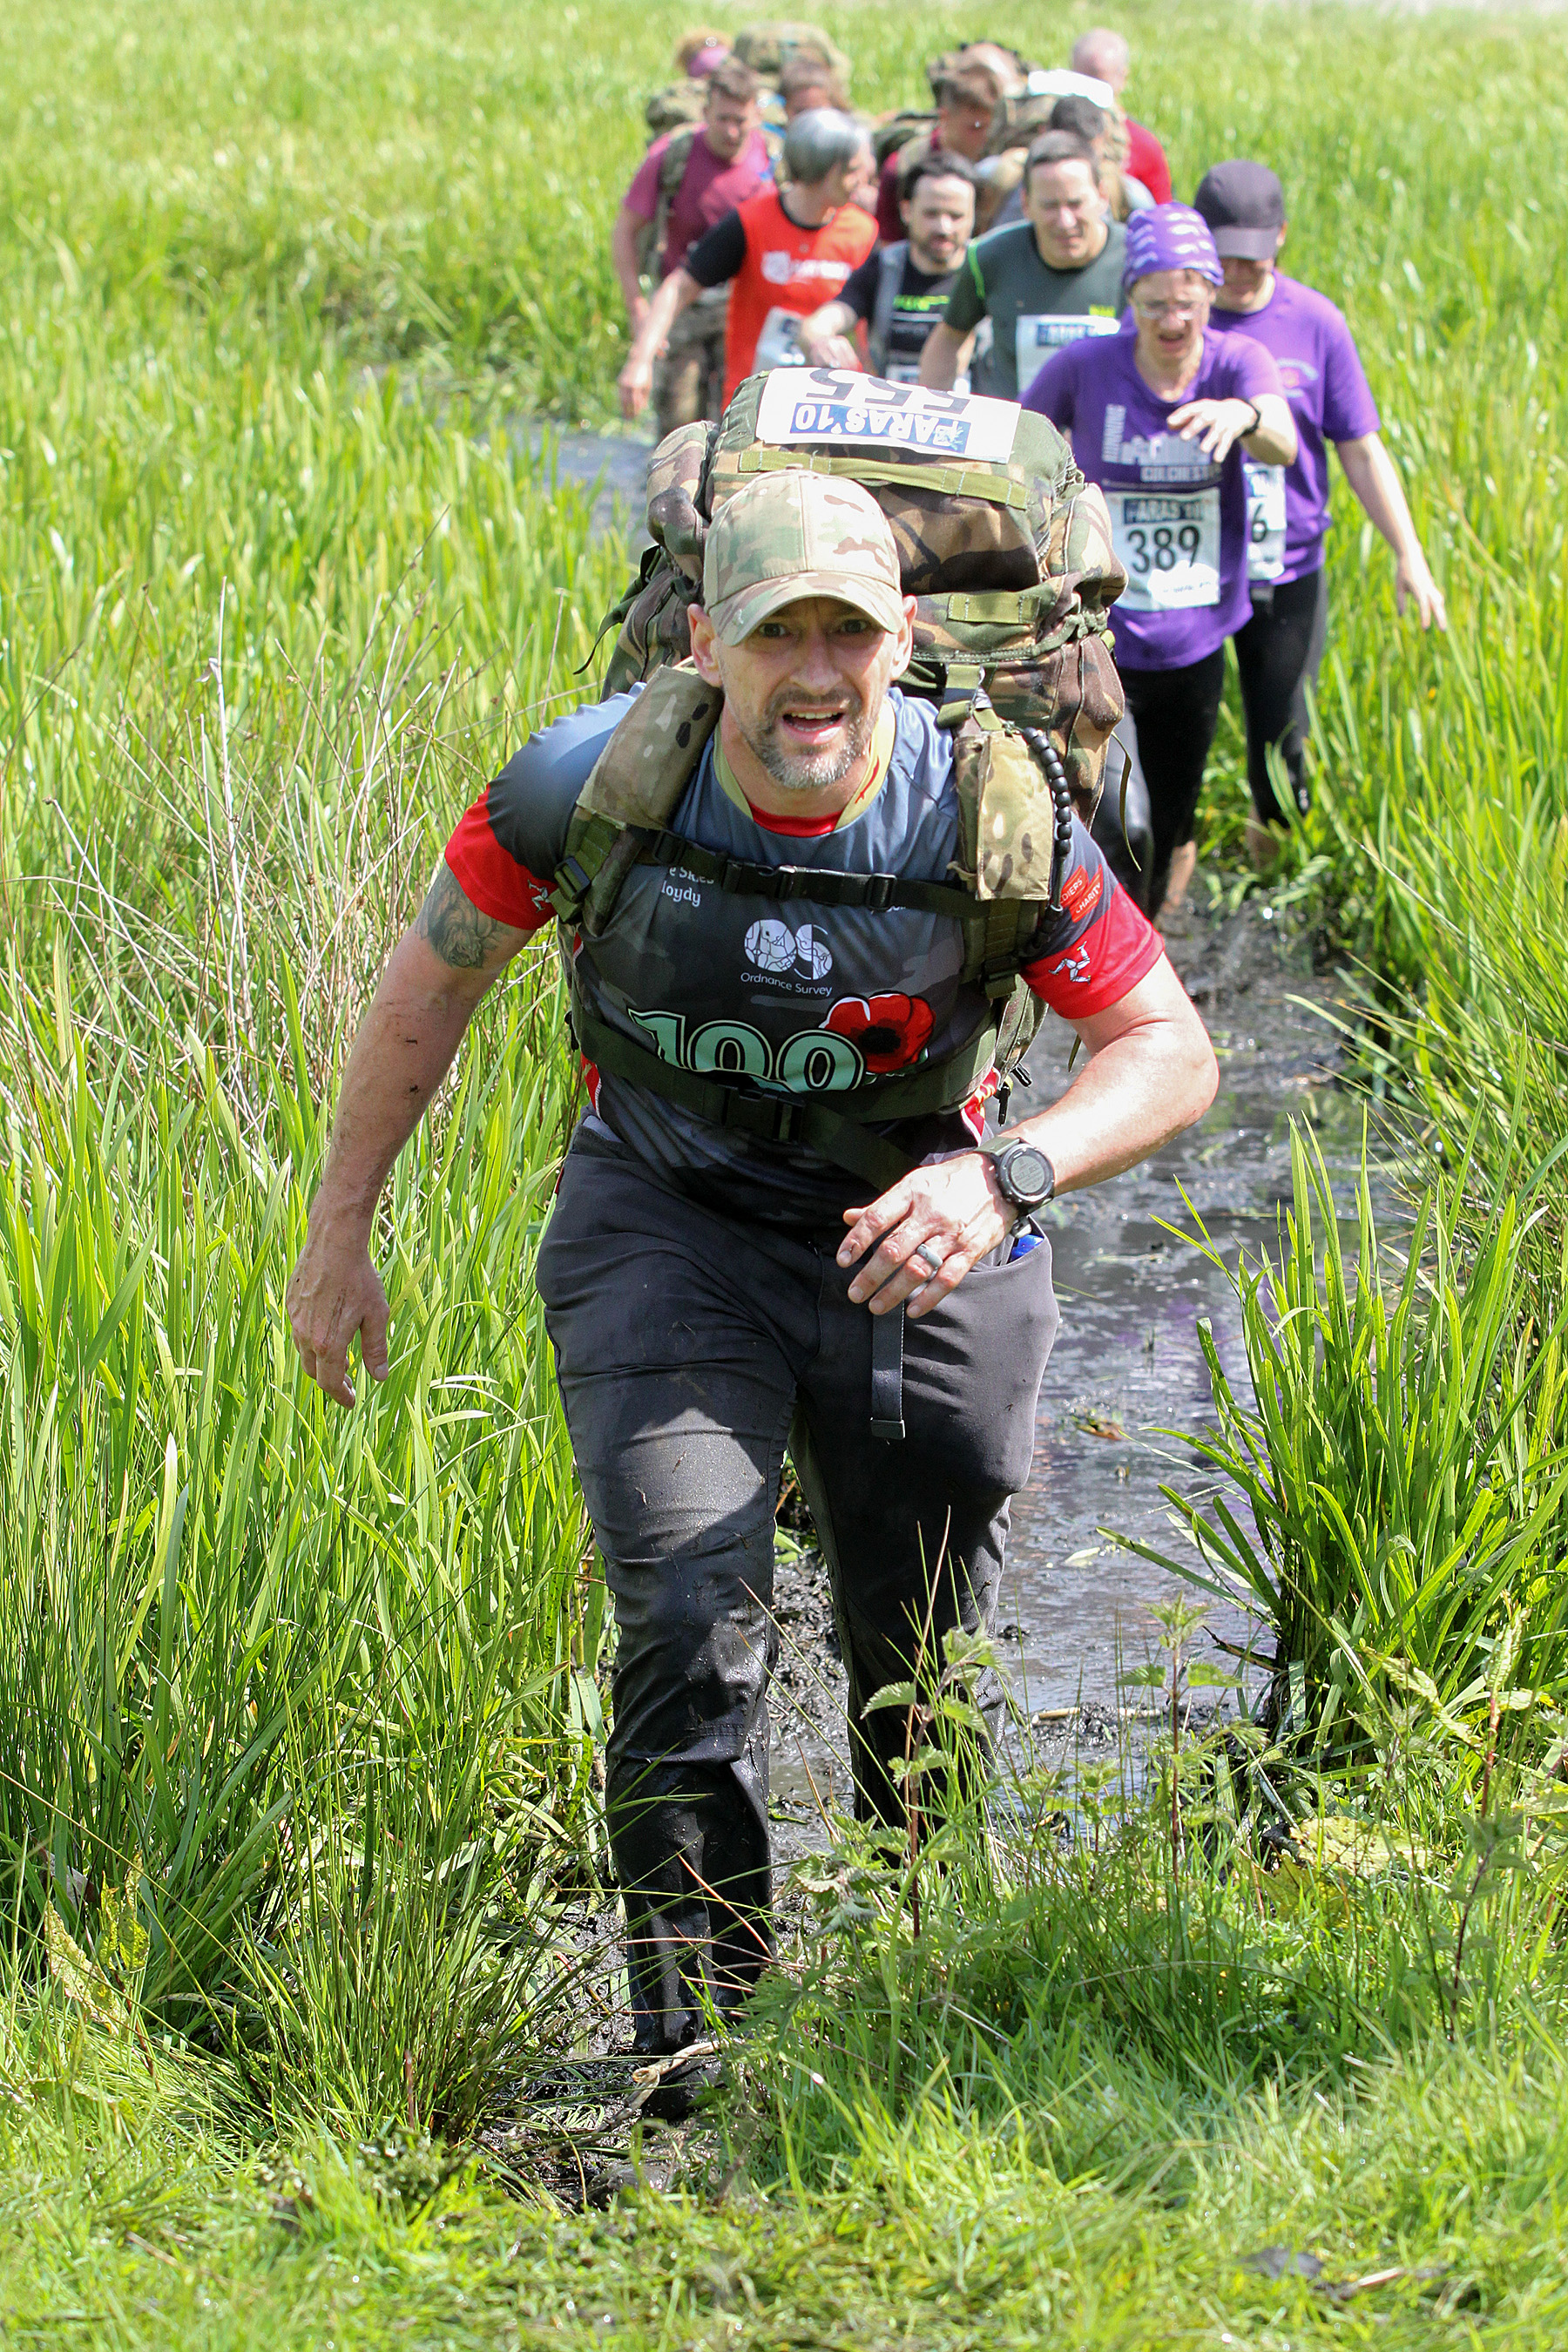 Paras'10 - Colchester 18.05.19 after the Spring Marathons